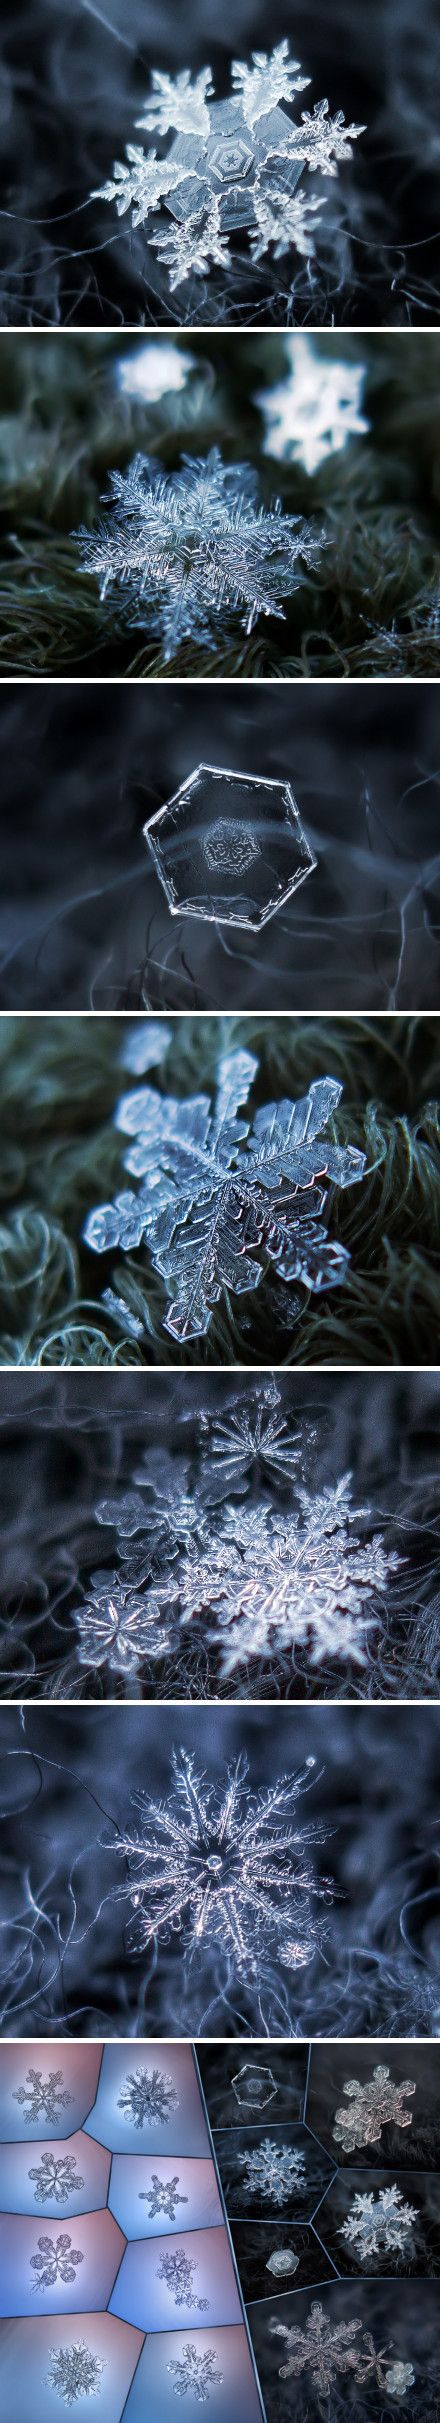 IF GOD TAKES THIS MUCH CARE WITH A SNOWFLAKE, HOW MUCH MORE HE CARES ABOUT US…